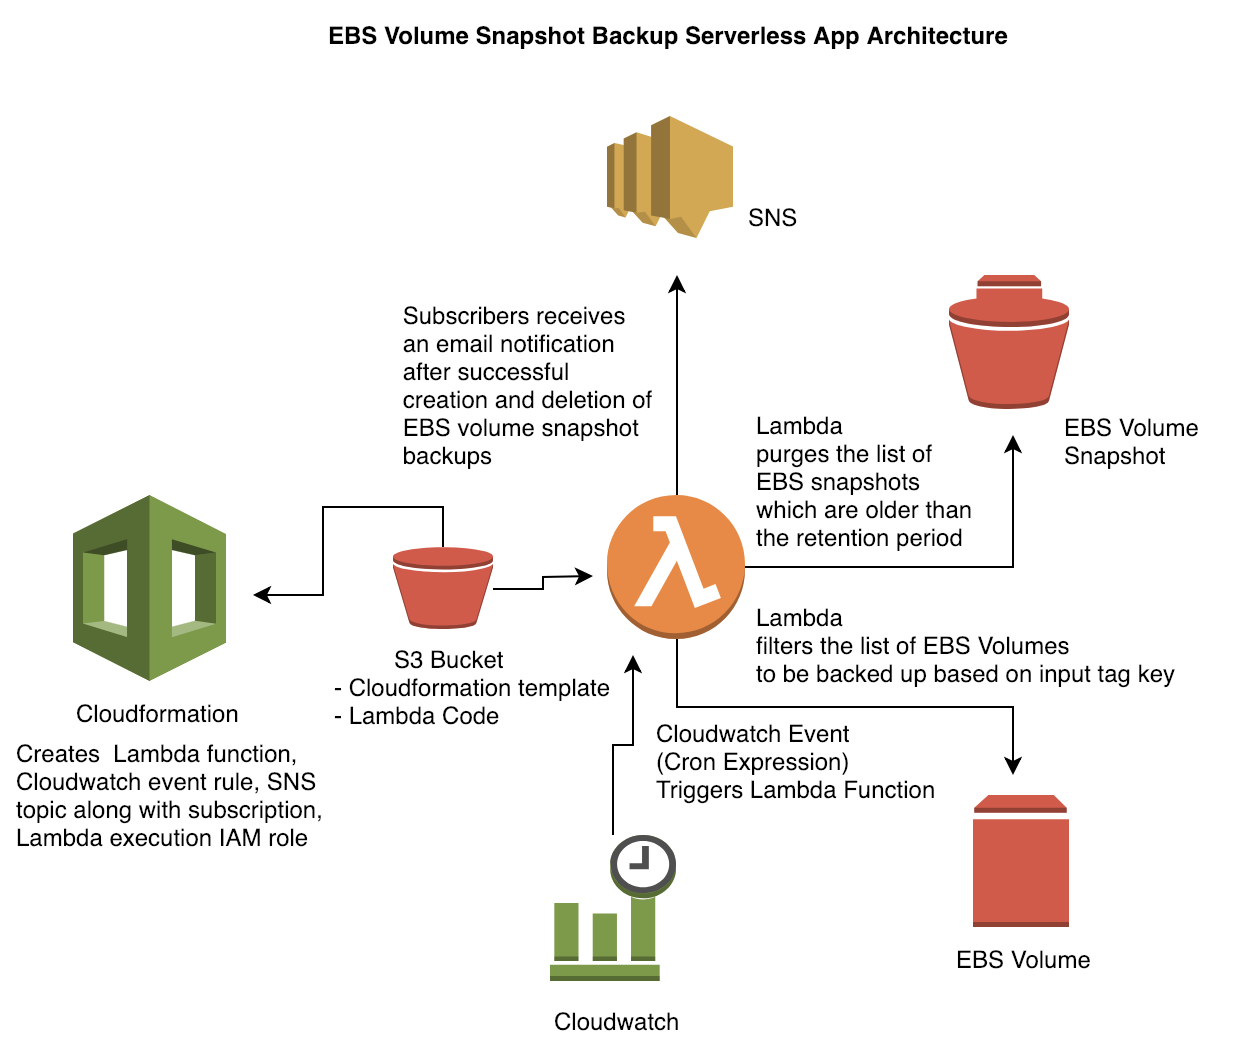 Serverless Approach to Backup and Restore EBS Volumes